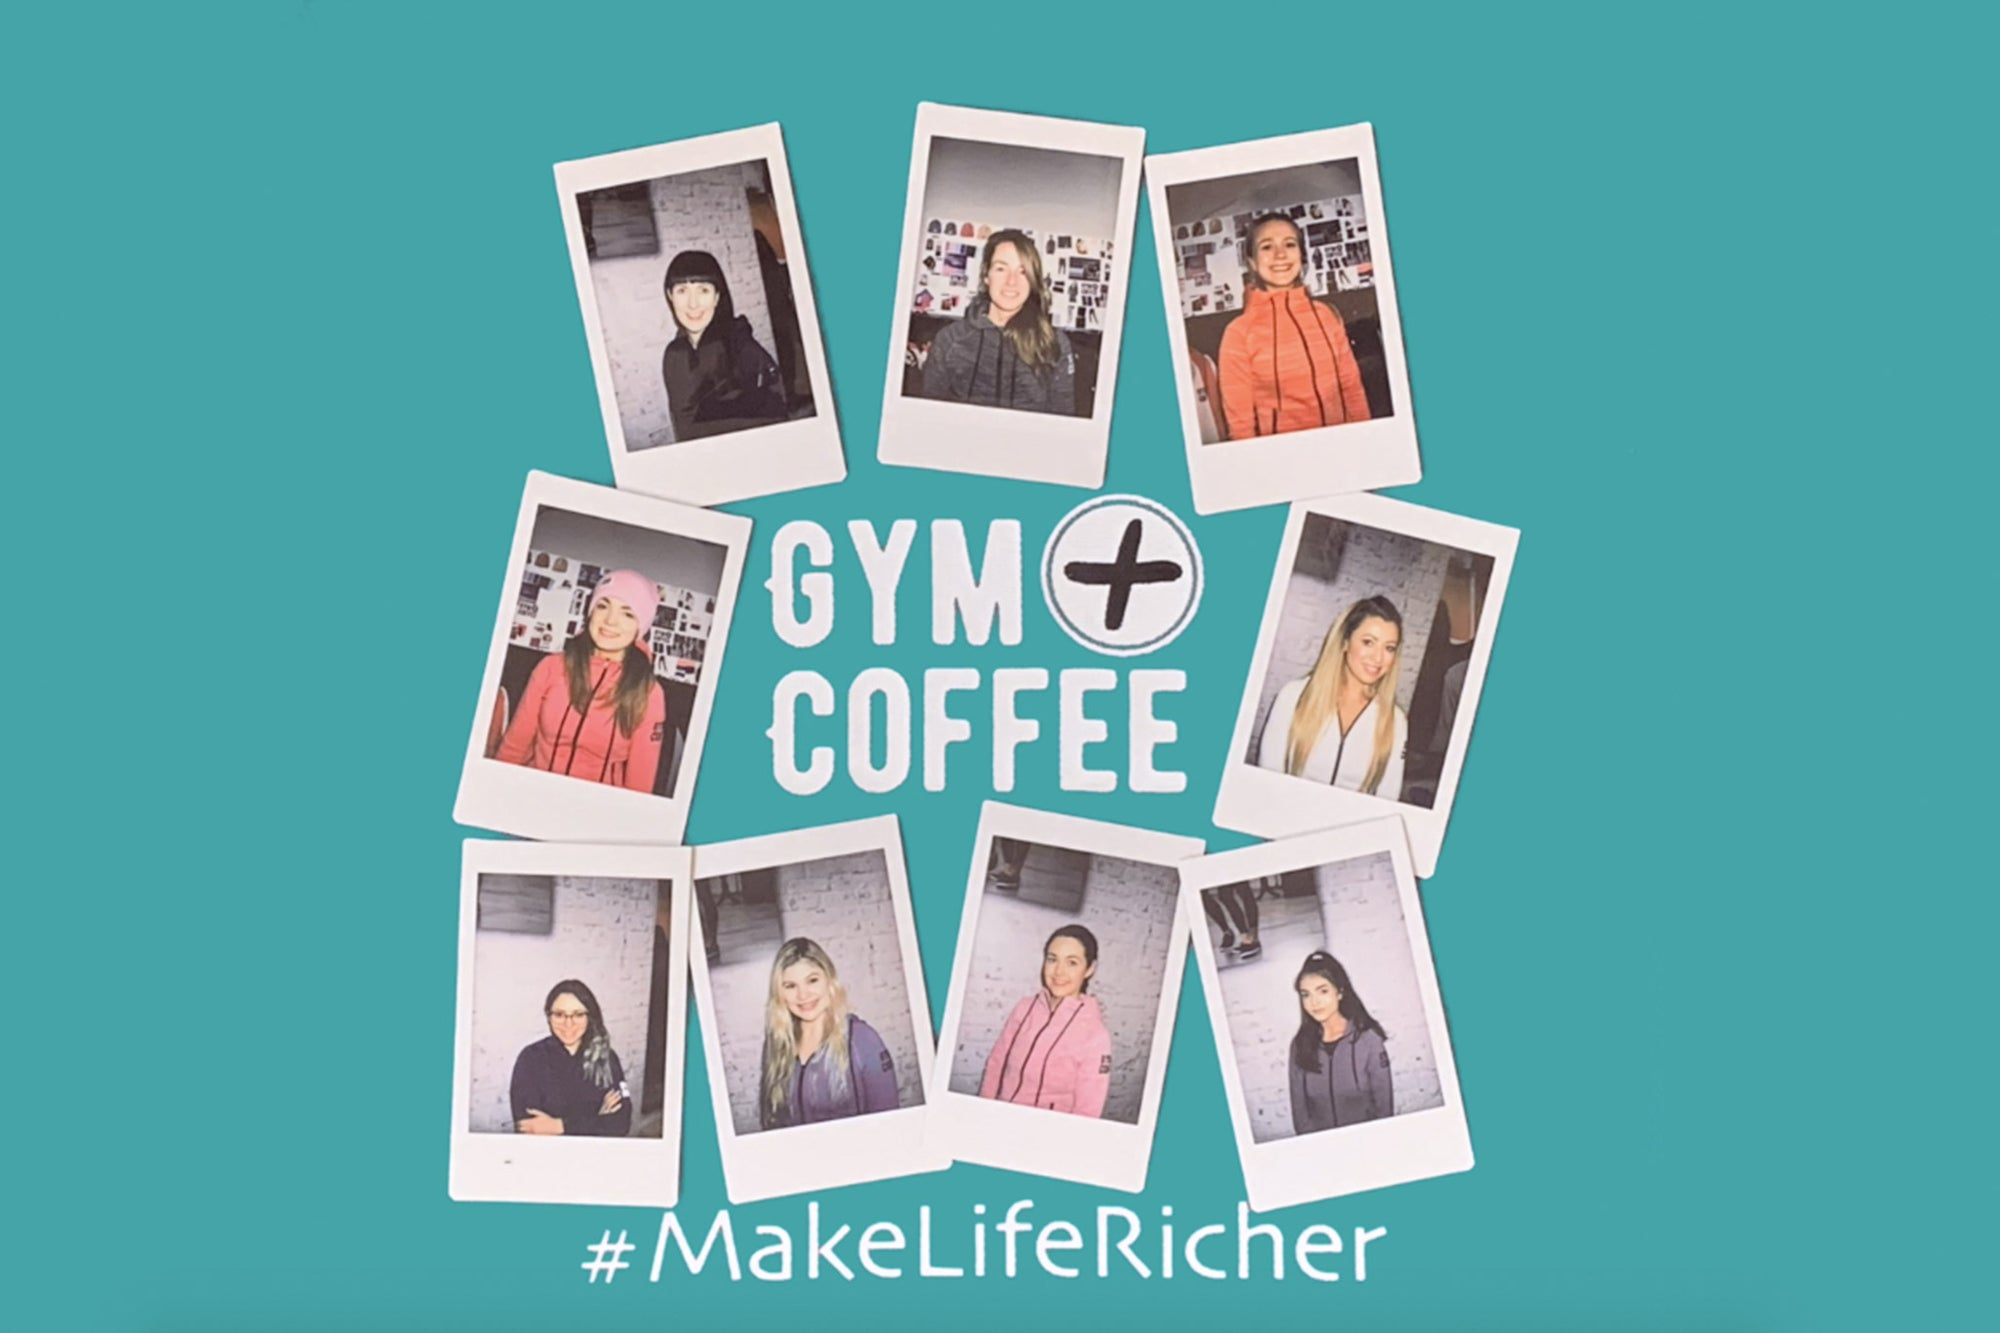 The Women Powering Gym+Coffee